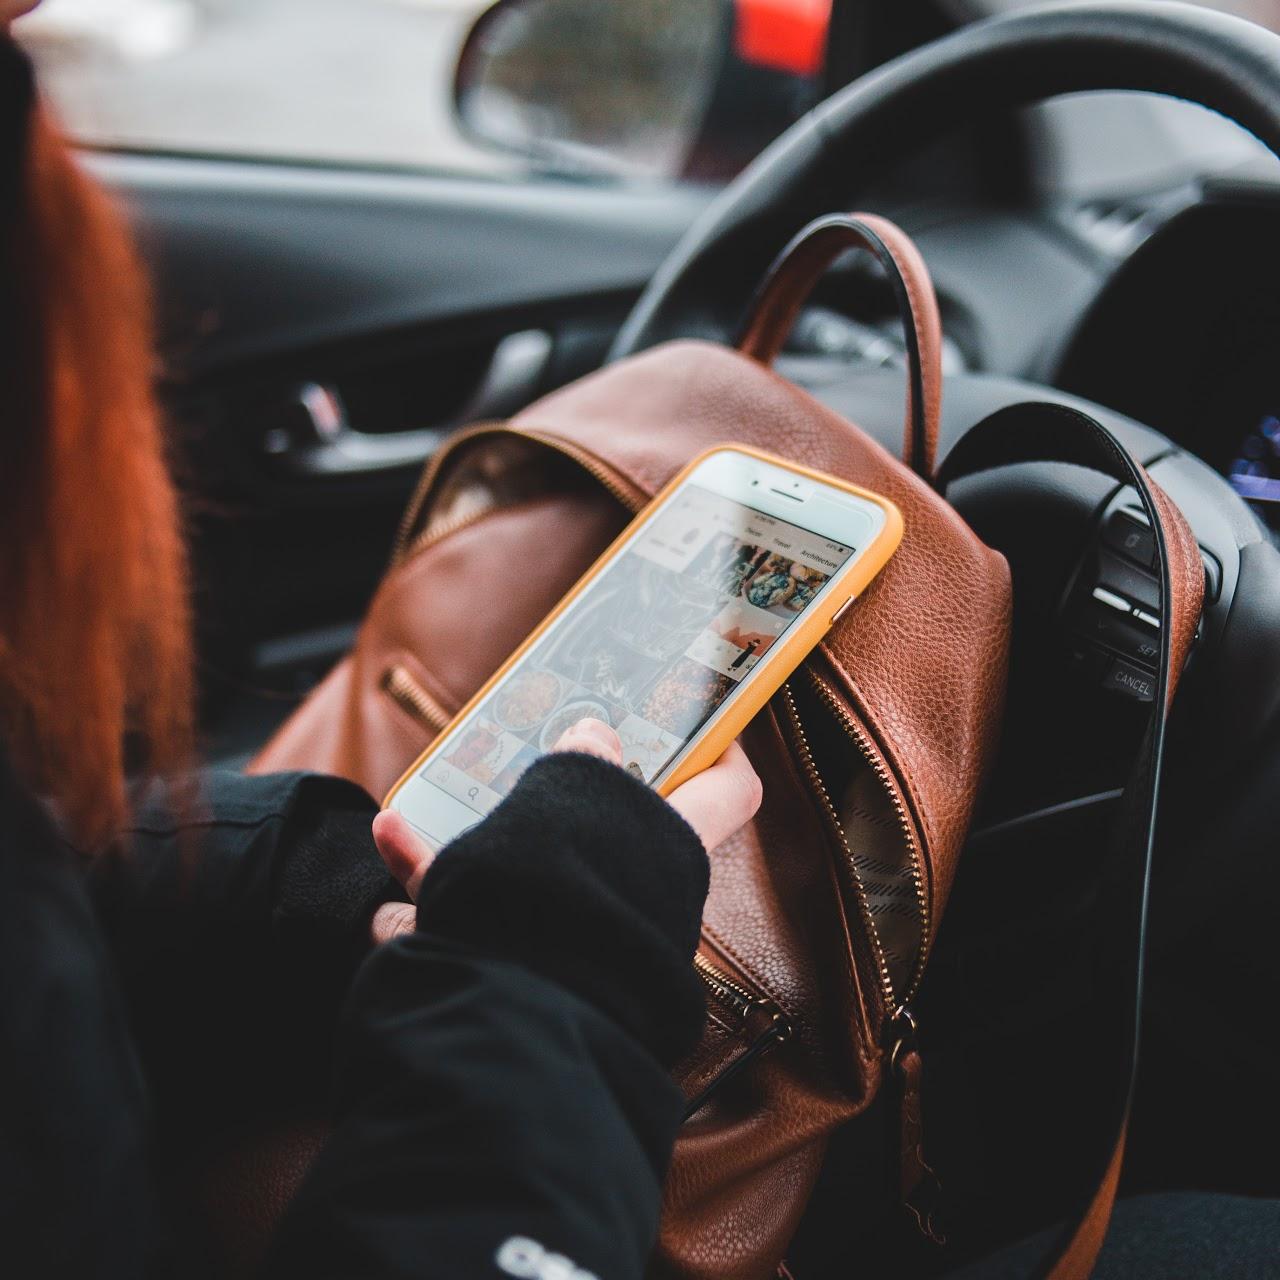 Distracted Driver Accidents